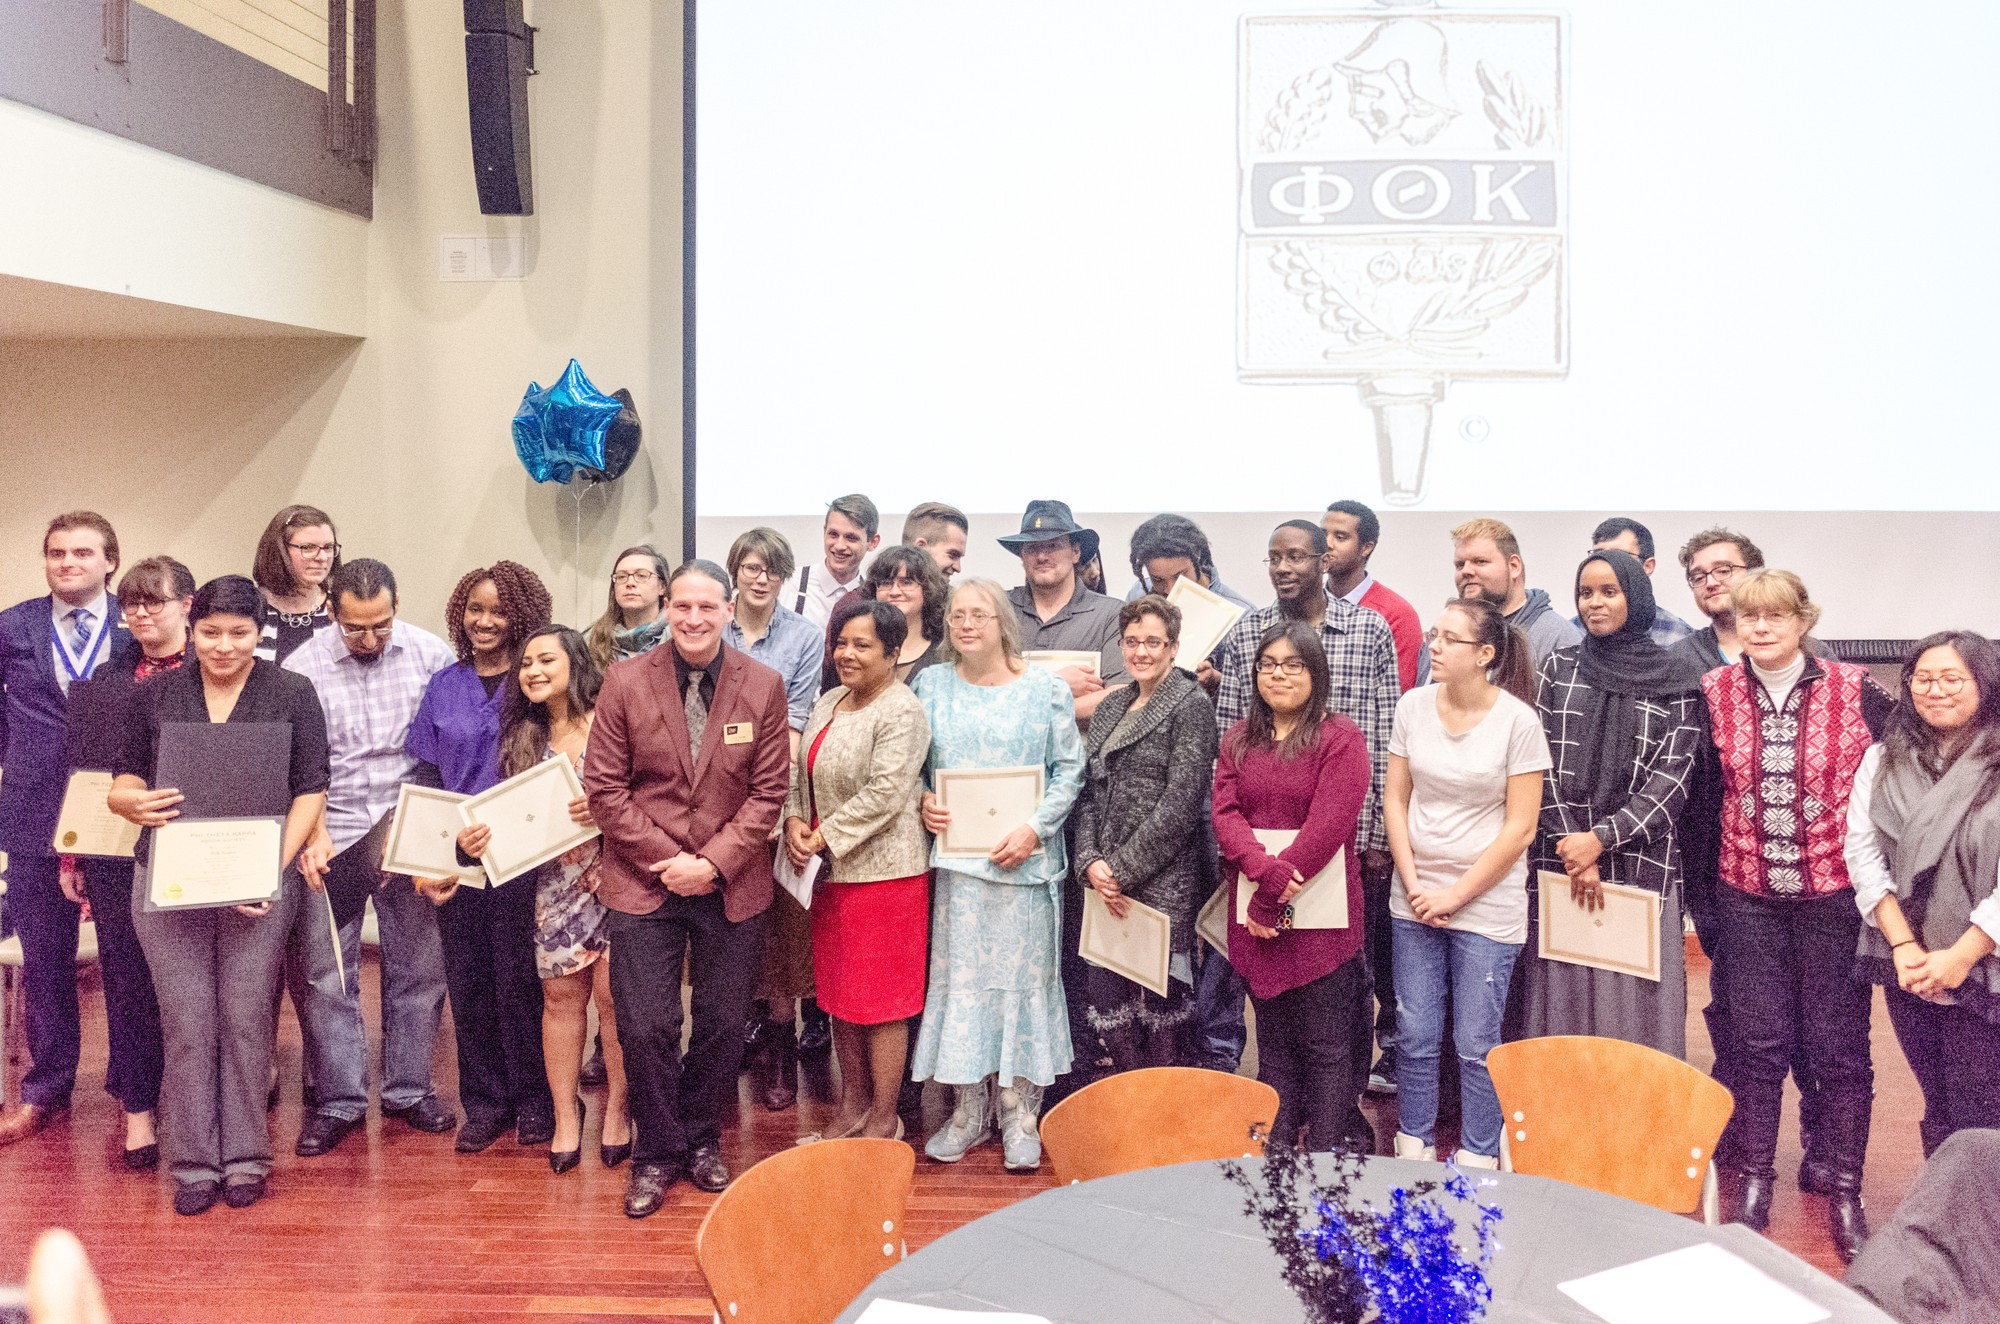 Inductees pose for photos after receiving their Phi Theta Kappa certificates. Photo credit: Benjamin Pecka